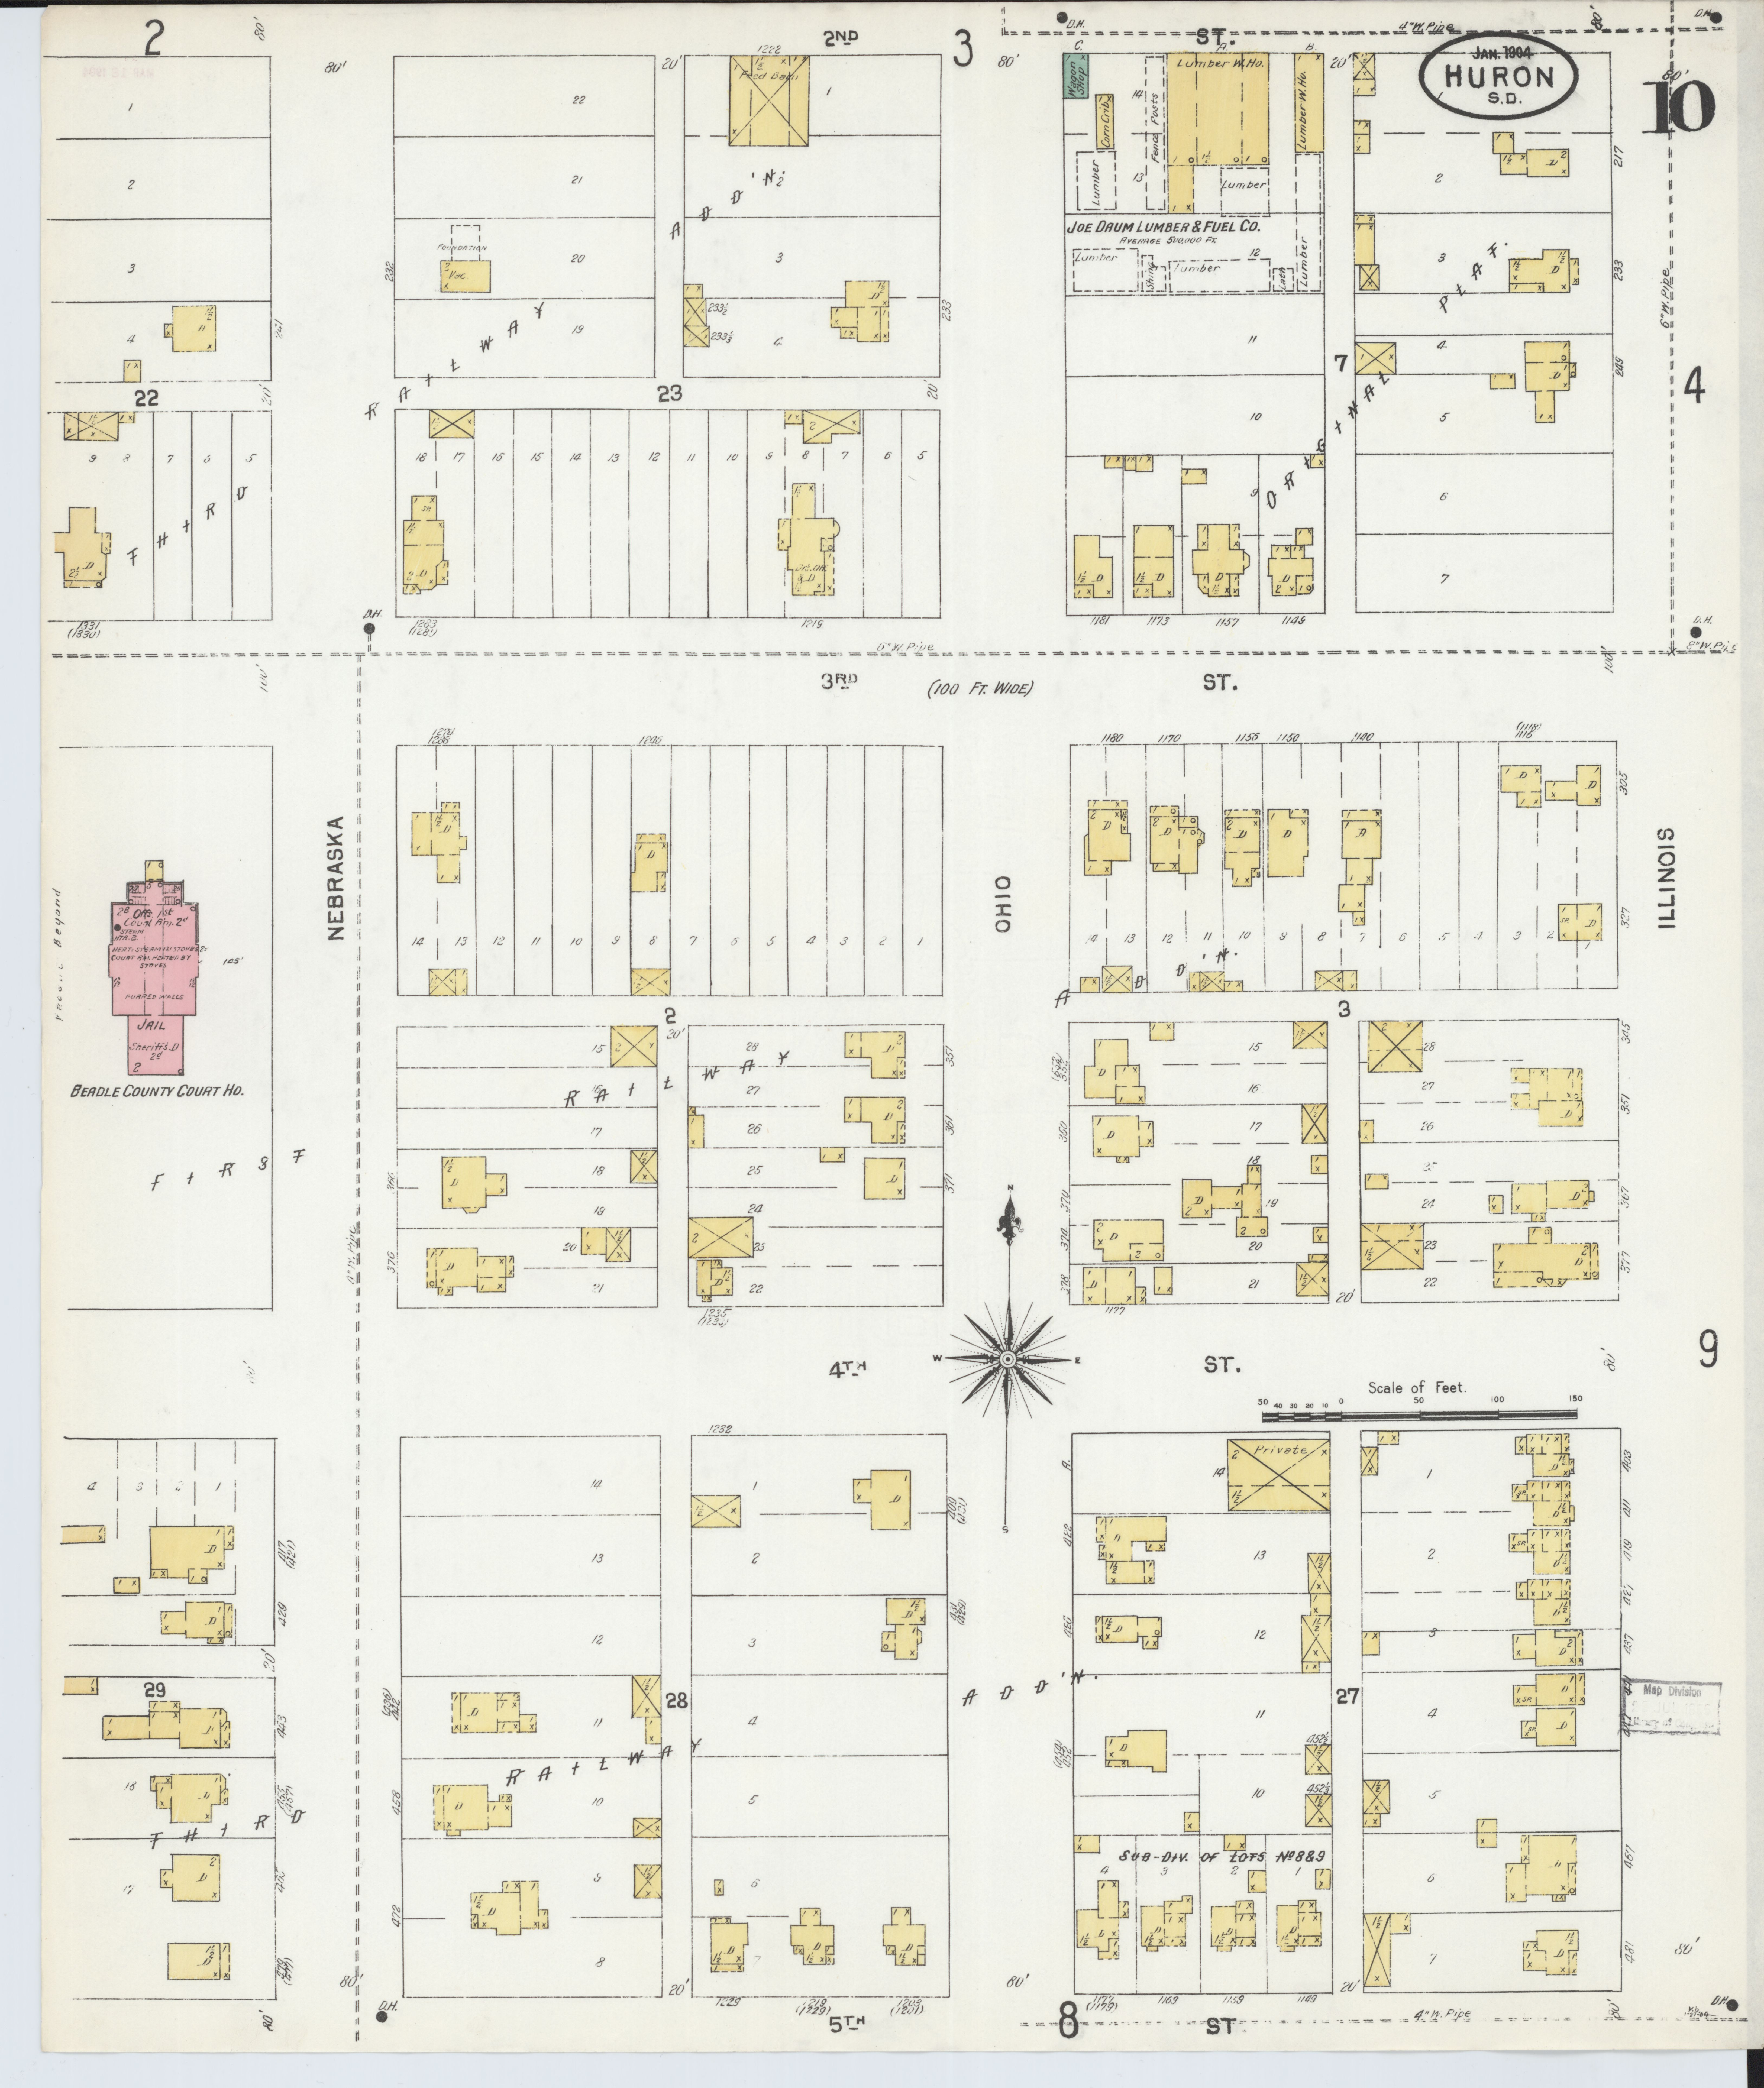 File:Sanborn Fire Insurance Map from Huron, Beadle County, South